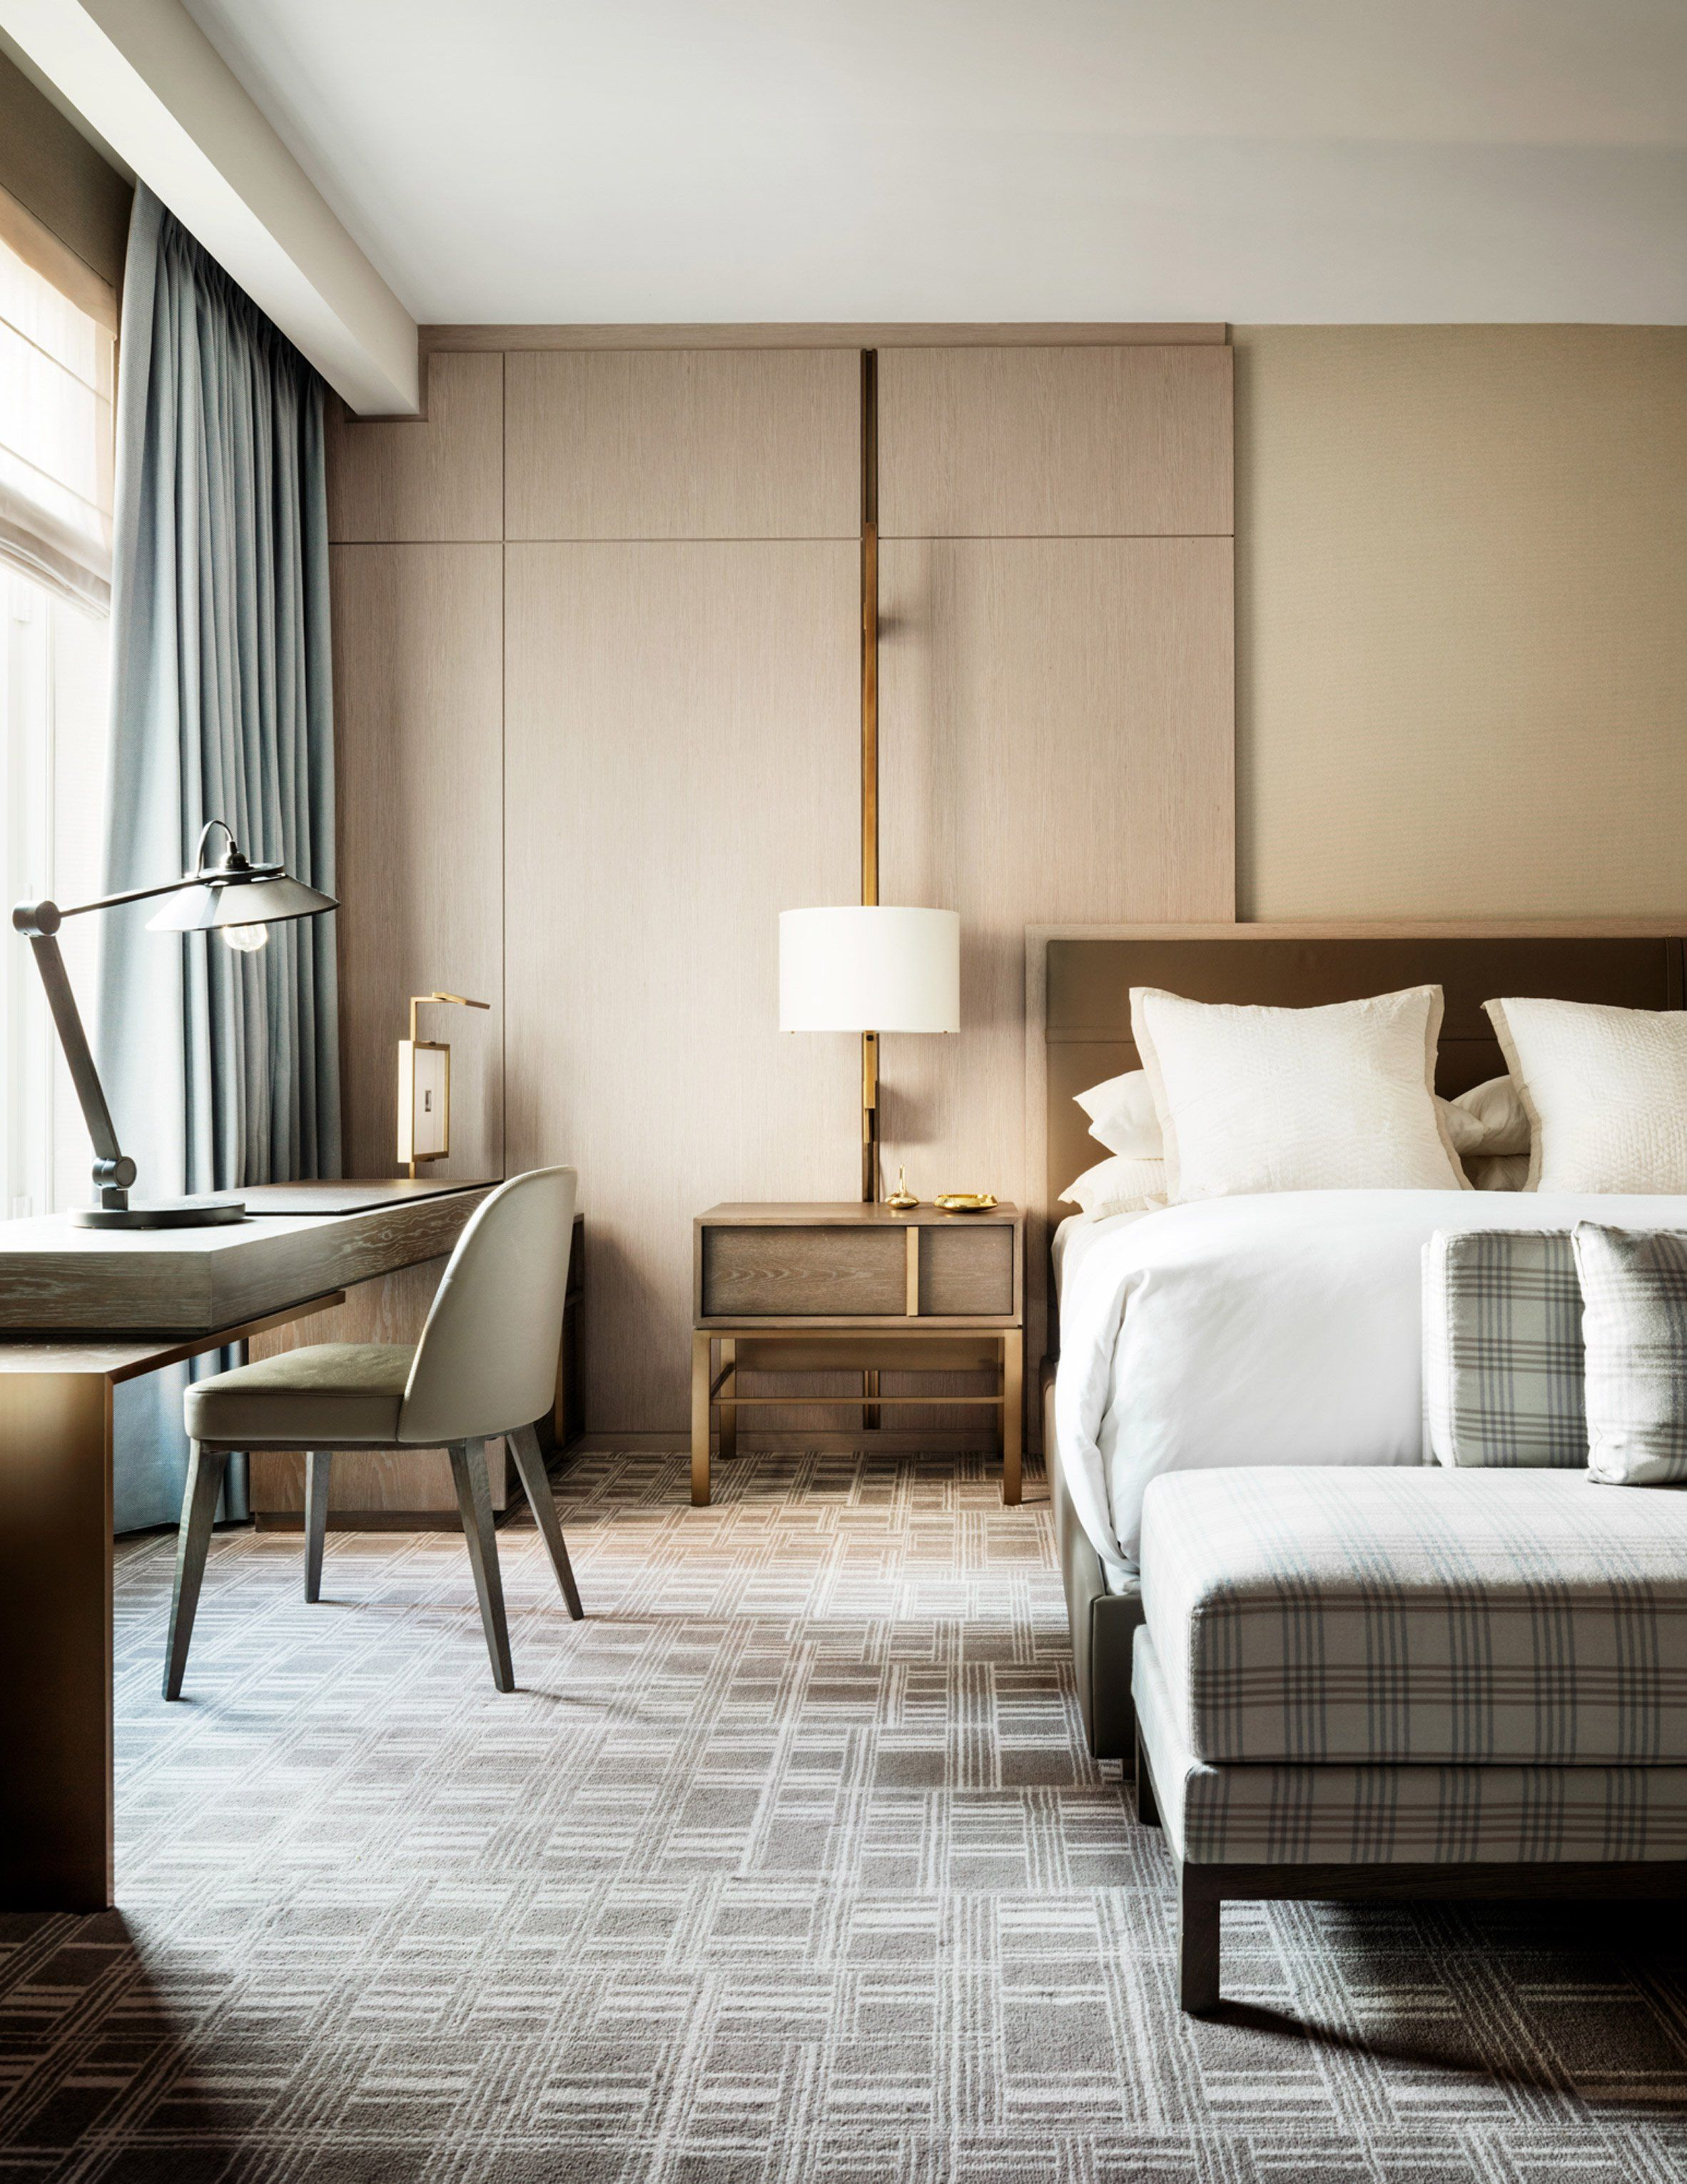 yabu pushelberg uses muted hues at four seasons downtown new york design firm yabu pushelberg has completed the interiors for the four seasons hotel in downtown manhattan